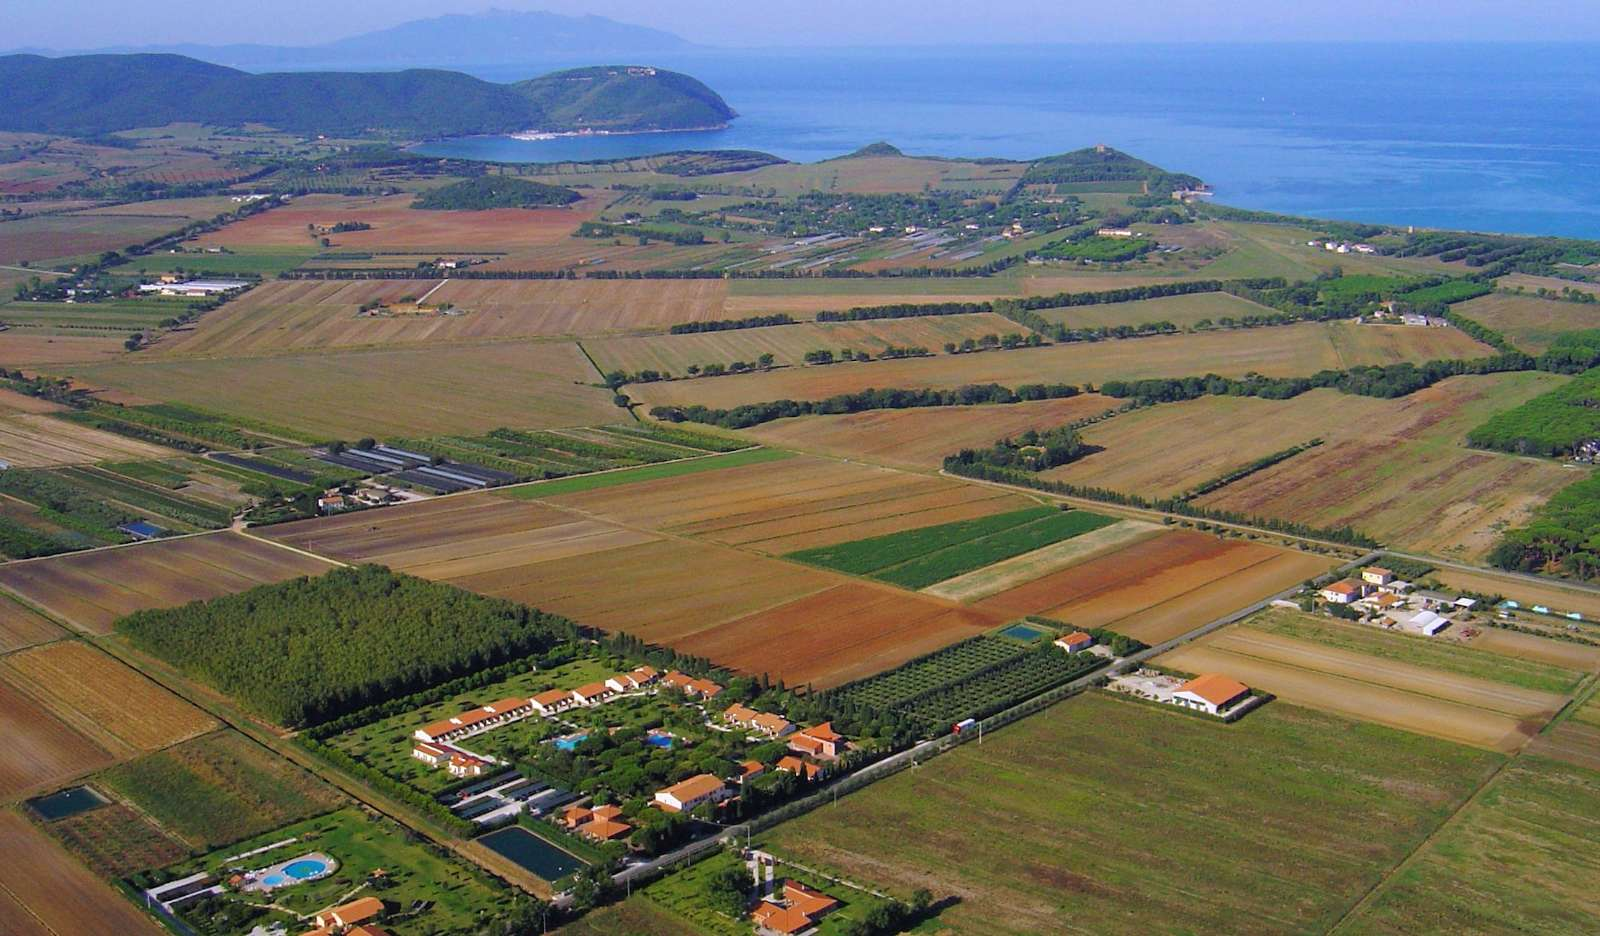 The area around Ghiacci Vecchi from the air